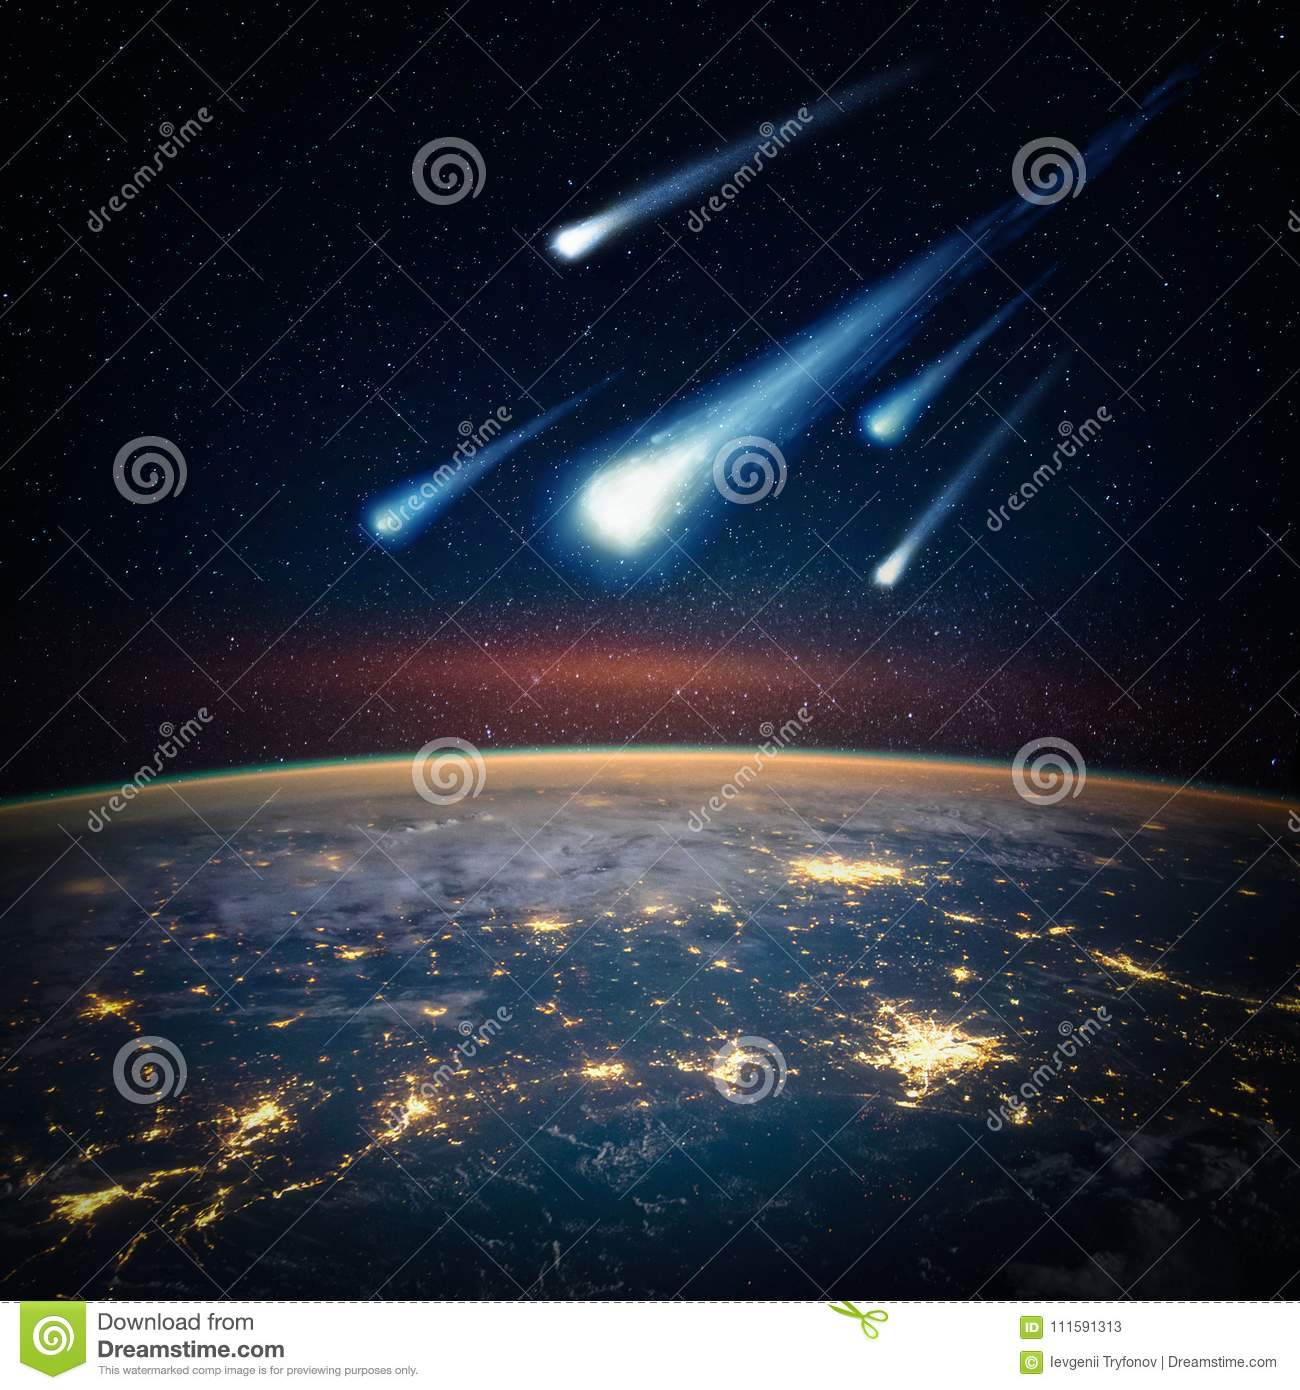 Falling Meteorite, Asteroid, Comet On Earth. Stock Image - Image of ...